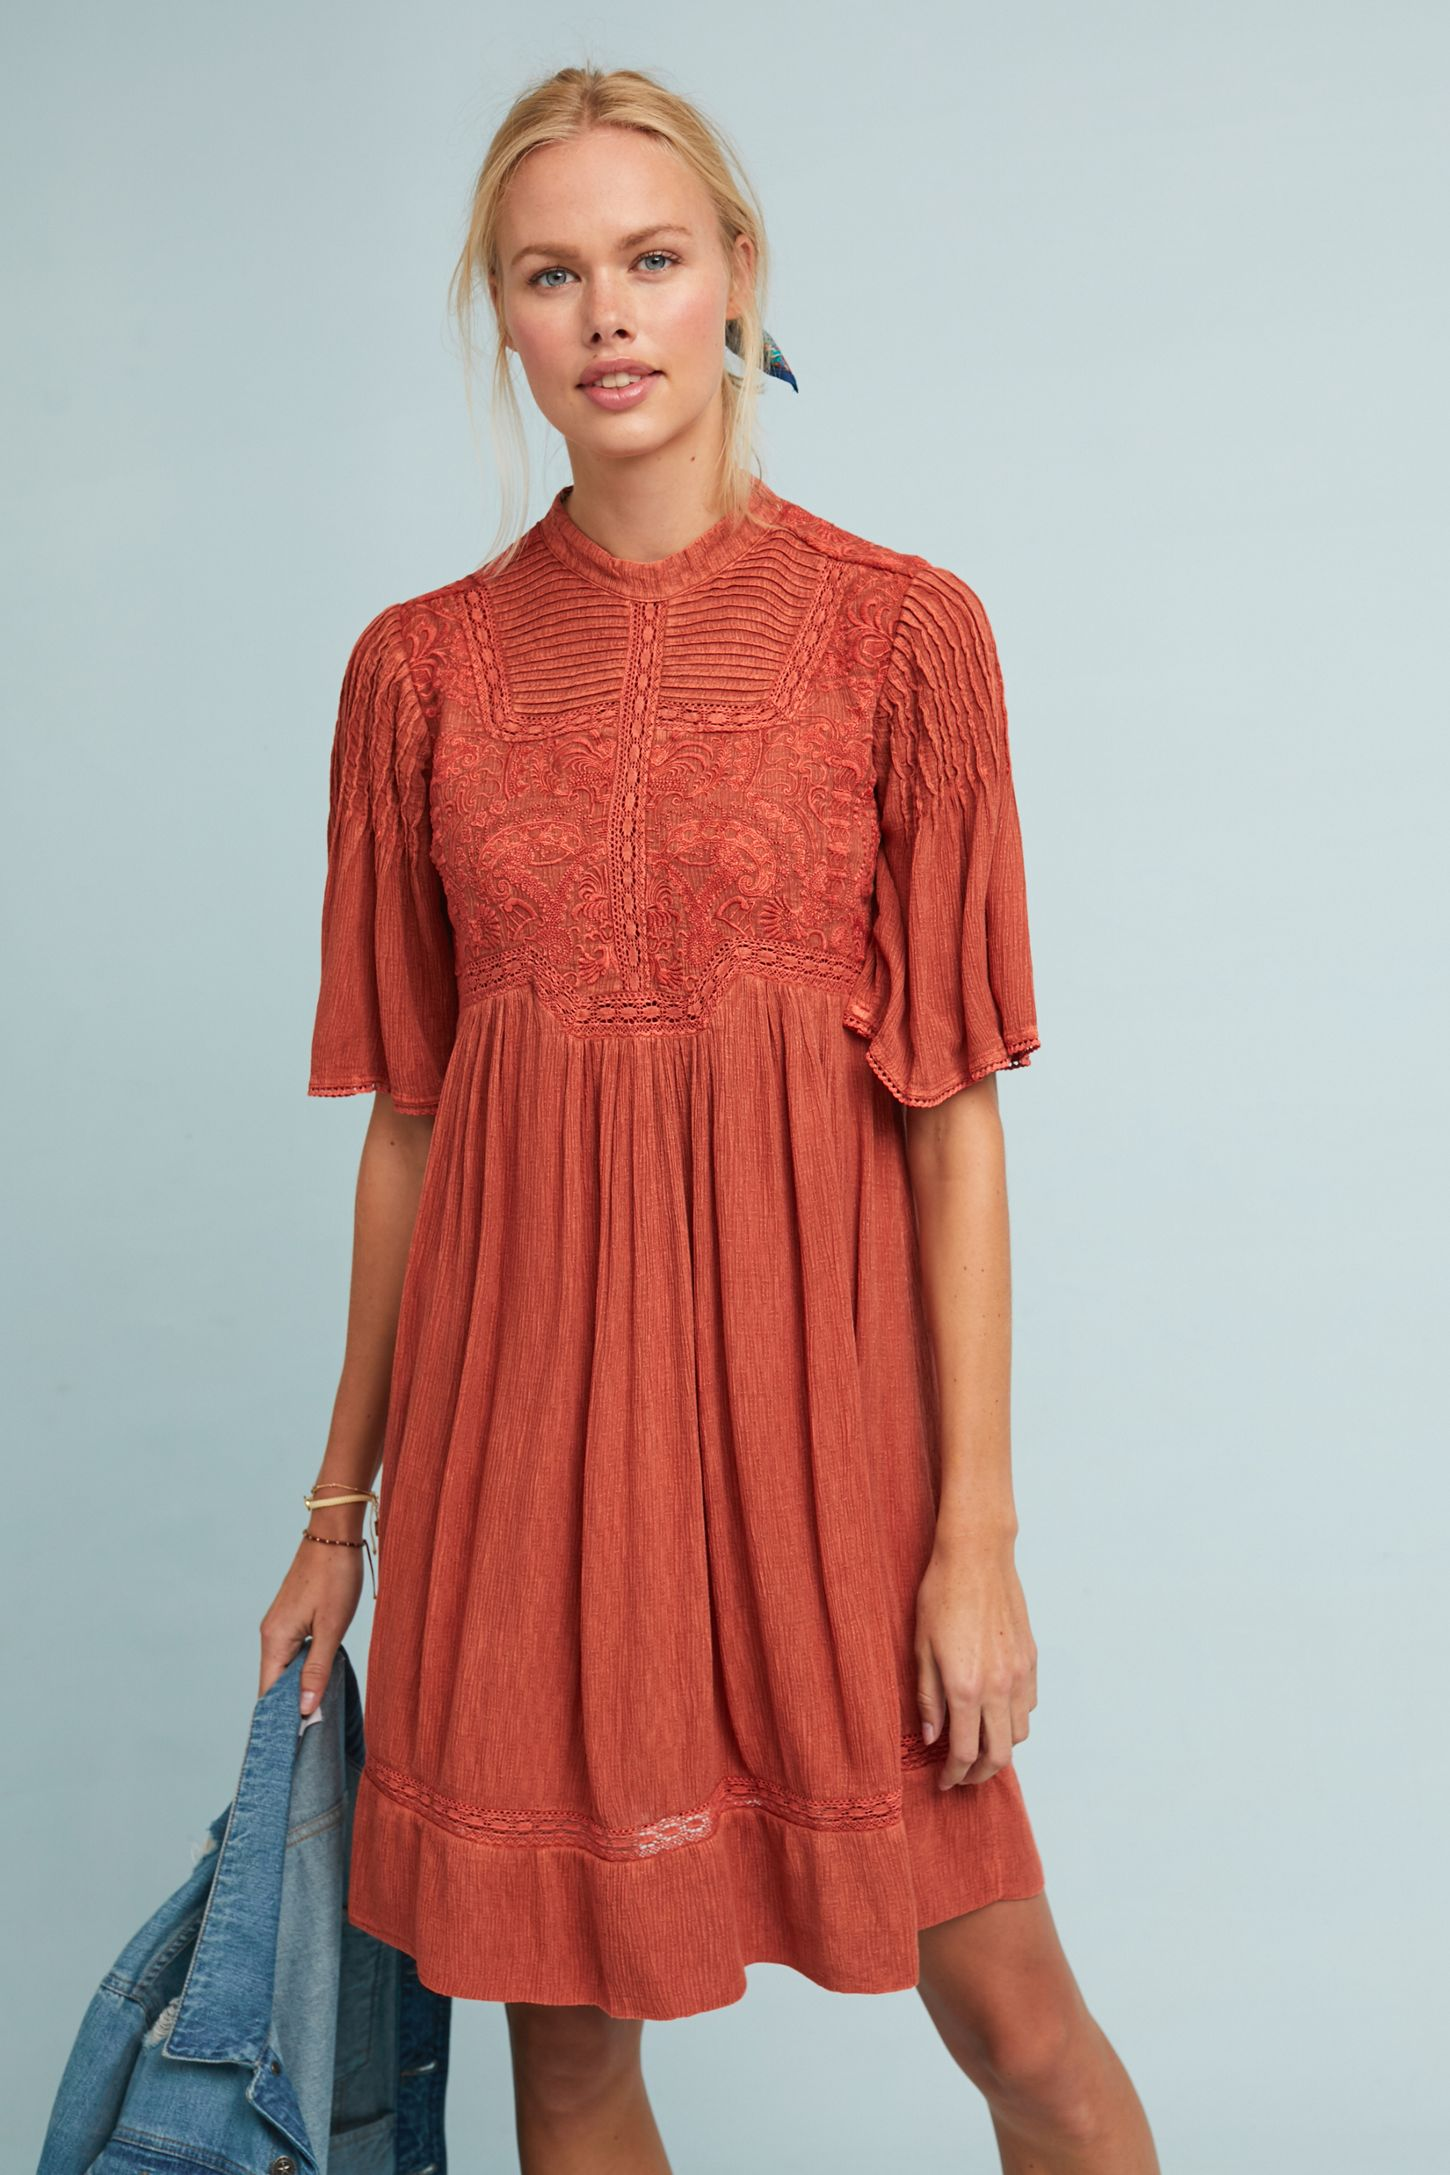 42f502db43d37 Calistoga Tunic Dress | Anthropologie